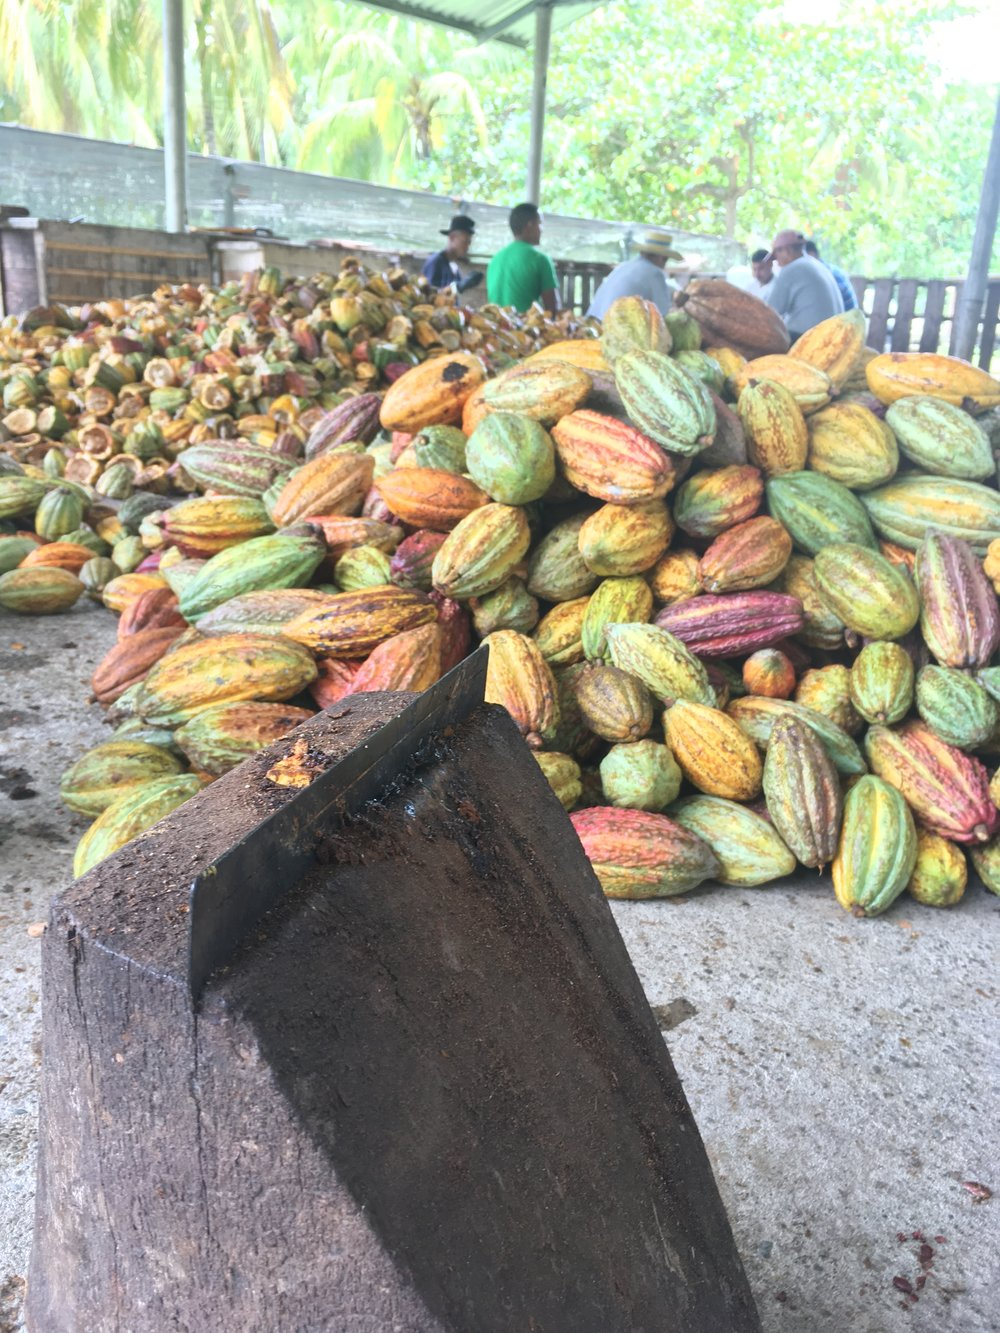 Opening Pods - At FHIA a post harvest processing facility in La Masica, Honduras. FHIA is a scientific research center that trains cacao farmers in Honduras.